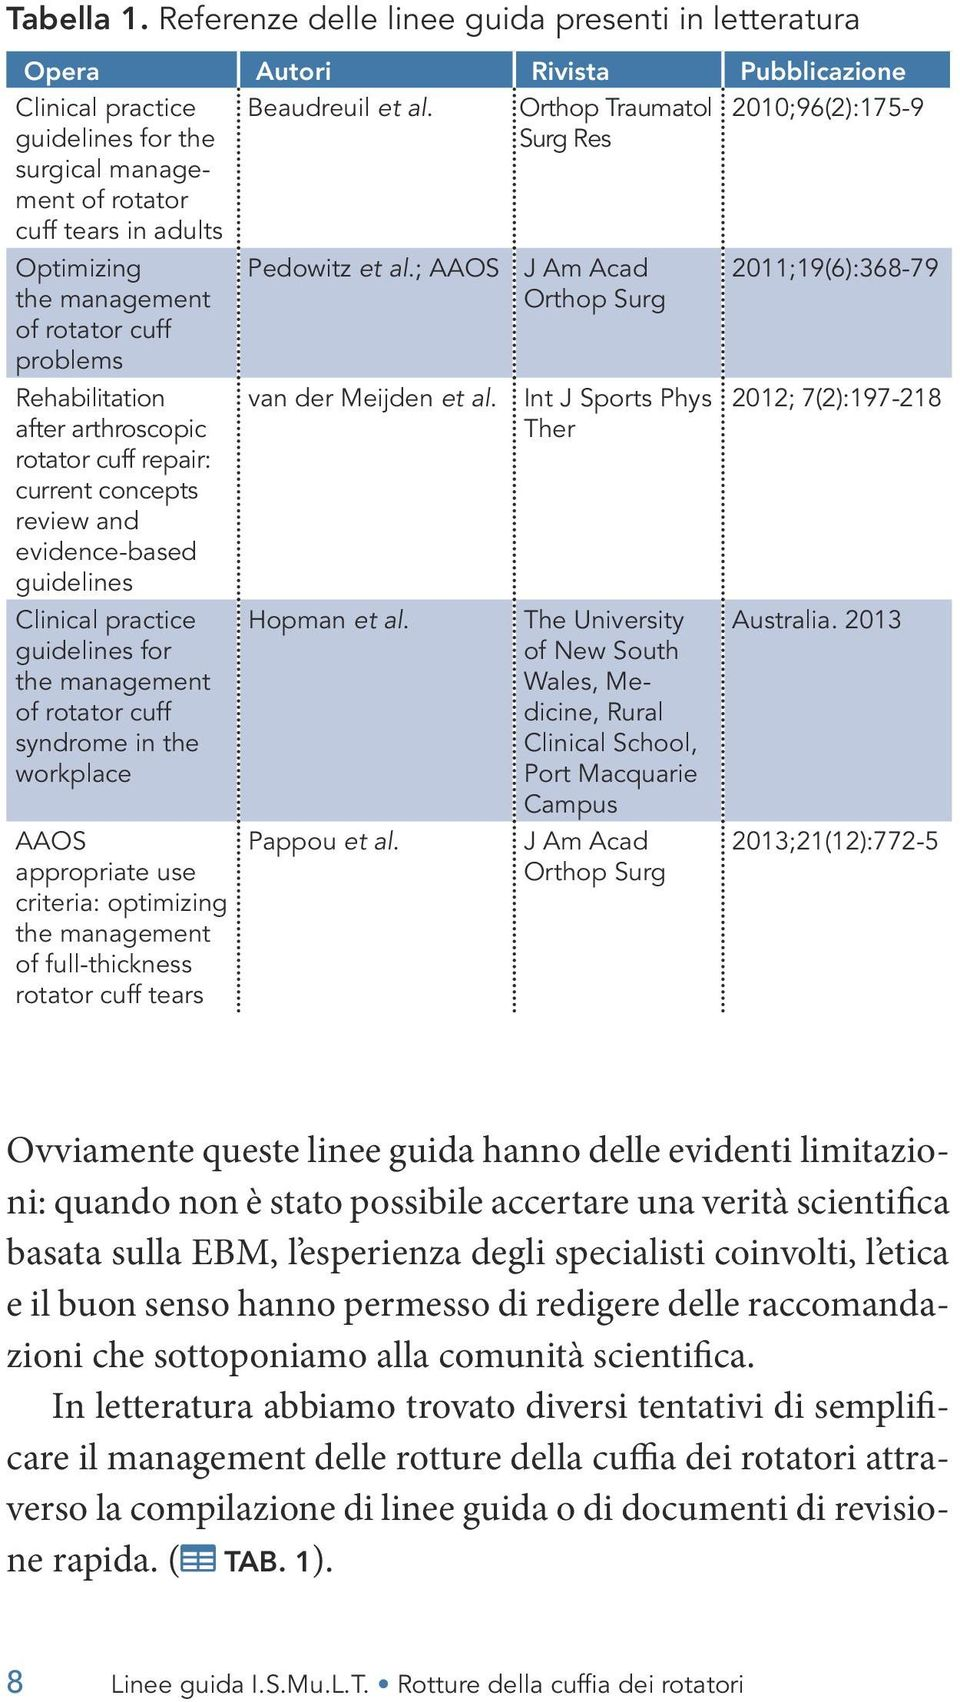 Orthop Traumatol 2010;96(2):175-9 Surg Res Optimizing the management of rotator cuff problems Rehabilitation after arthroscopic rotator cuff repair: current concepts review and evidence-based